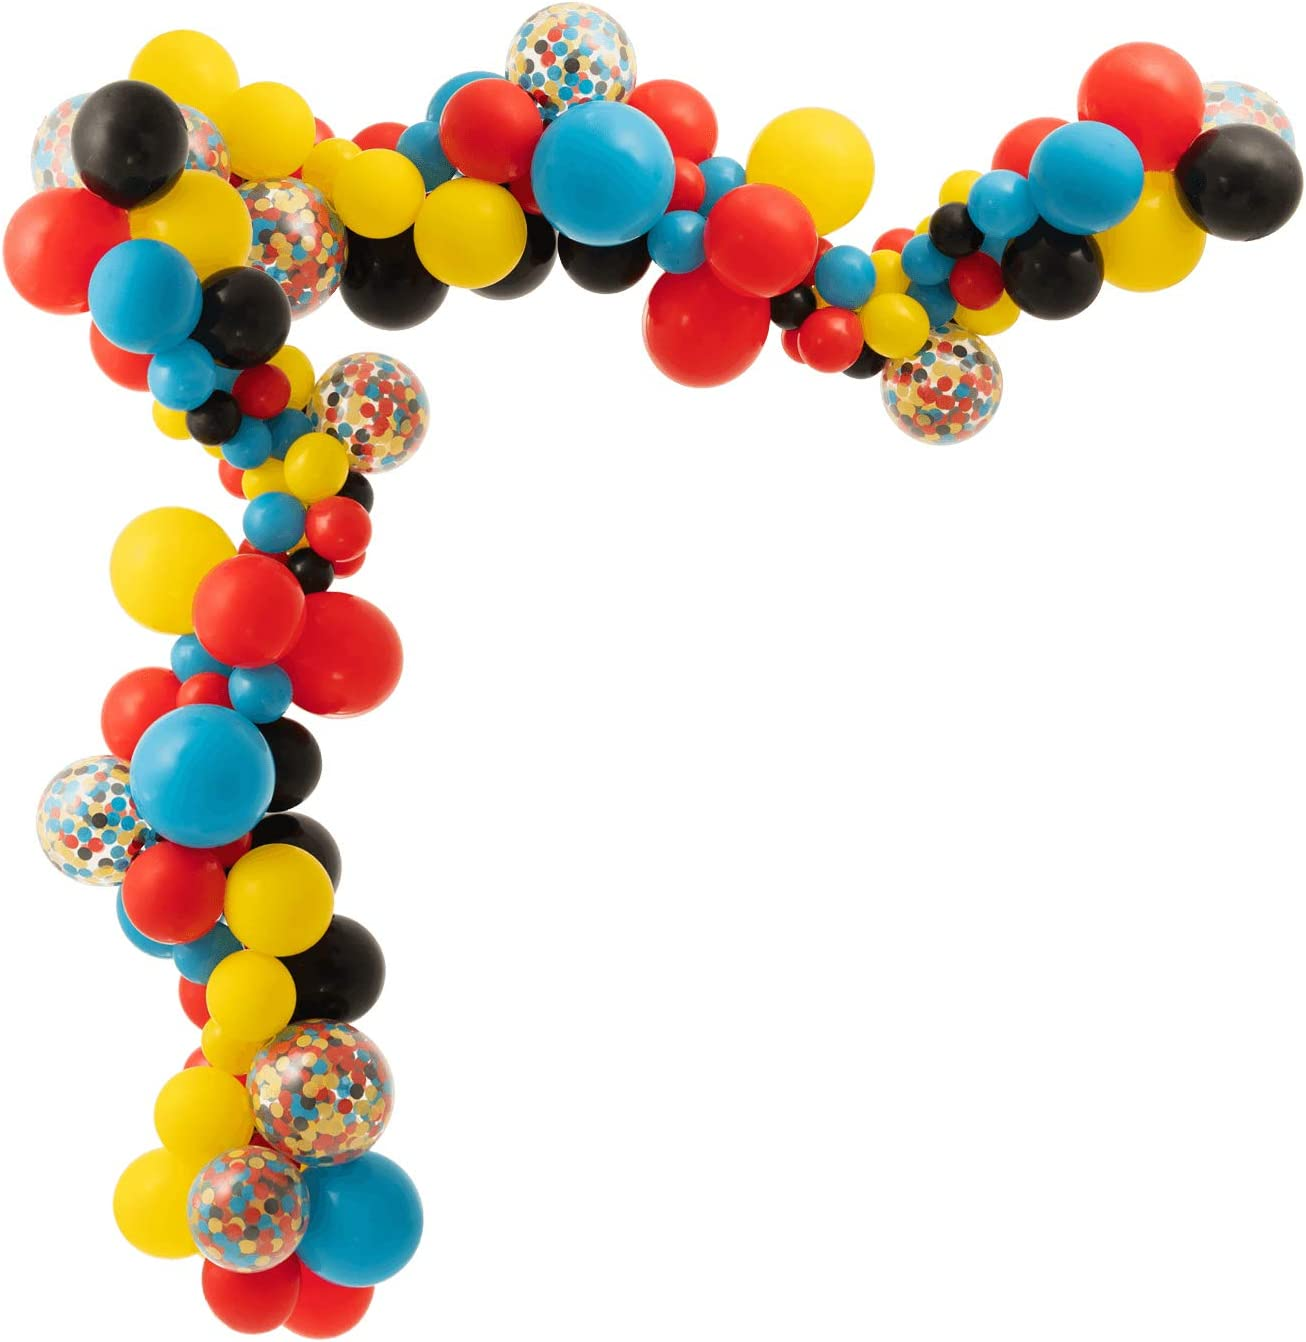 Superhero Theme Balloon Arch Garland Kit Blue Red Yellow Black Balloons with Confetti, 90 Pack with Decoration Strip, Balloon Dot, Instruction, for Birthday Kids Baby Shower Party Decorations